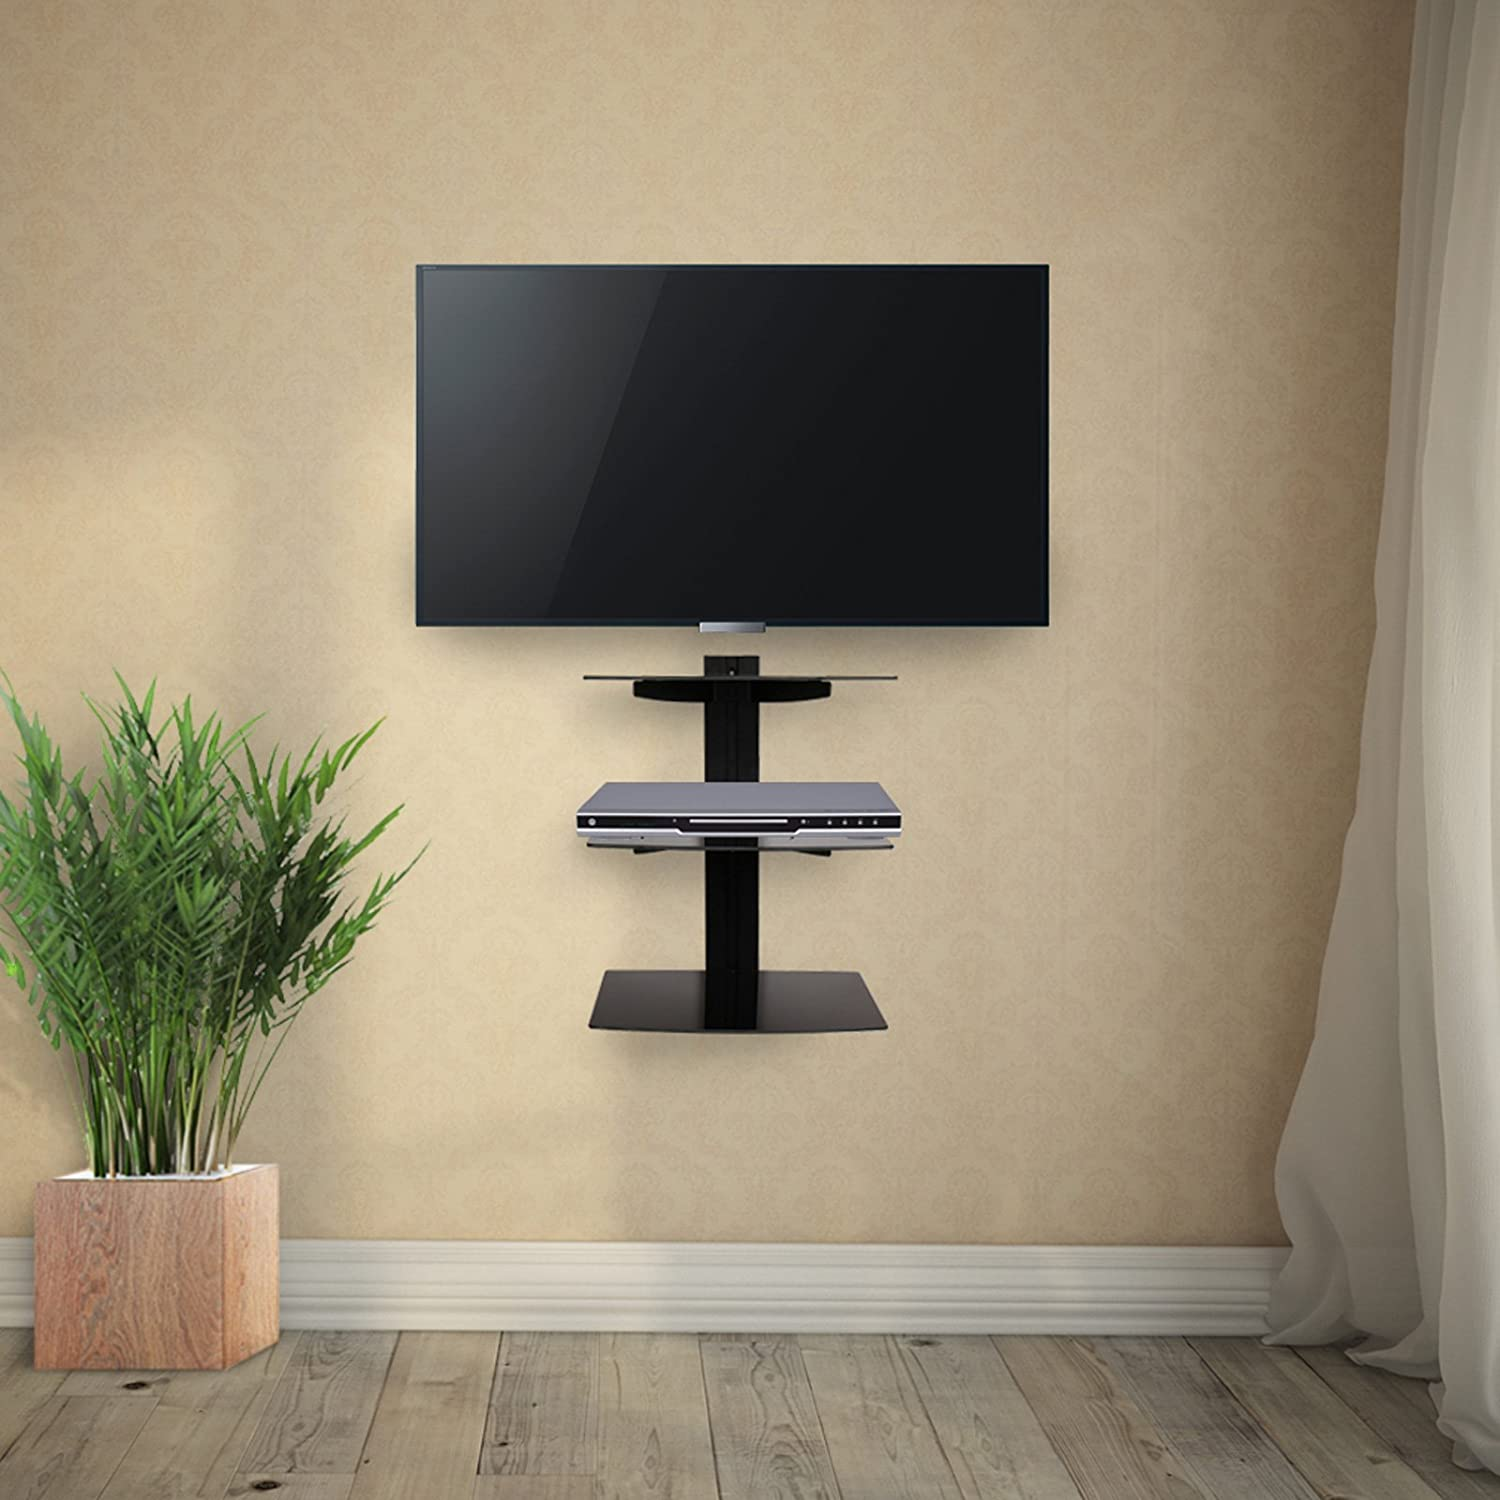 tv wandhalterung kabel verstecken. Black Bedroom Furniture Sets. Home Design Ideas